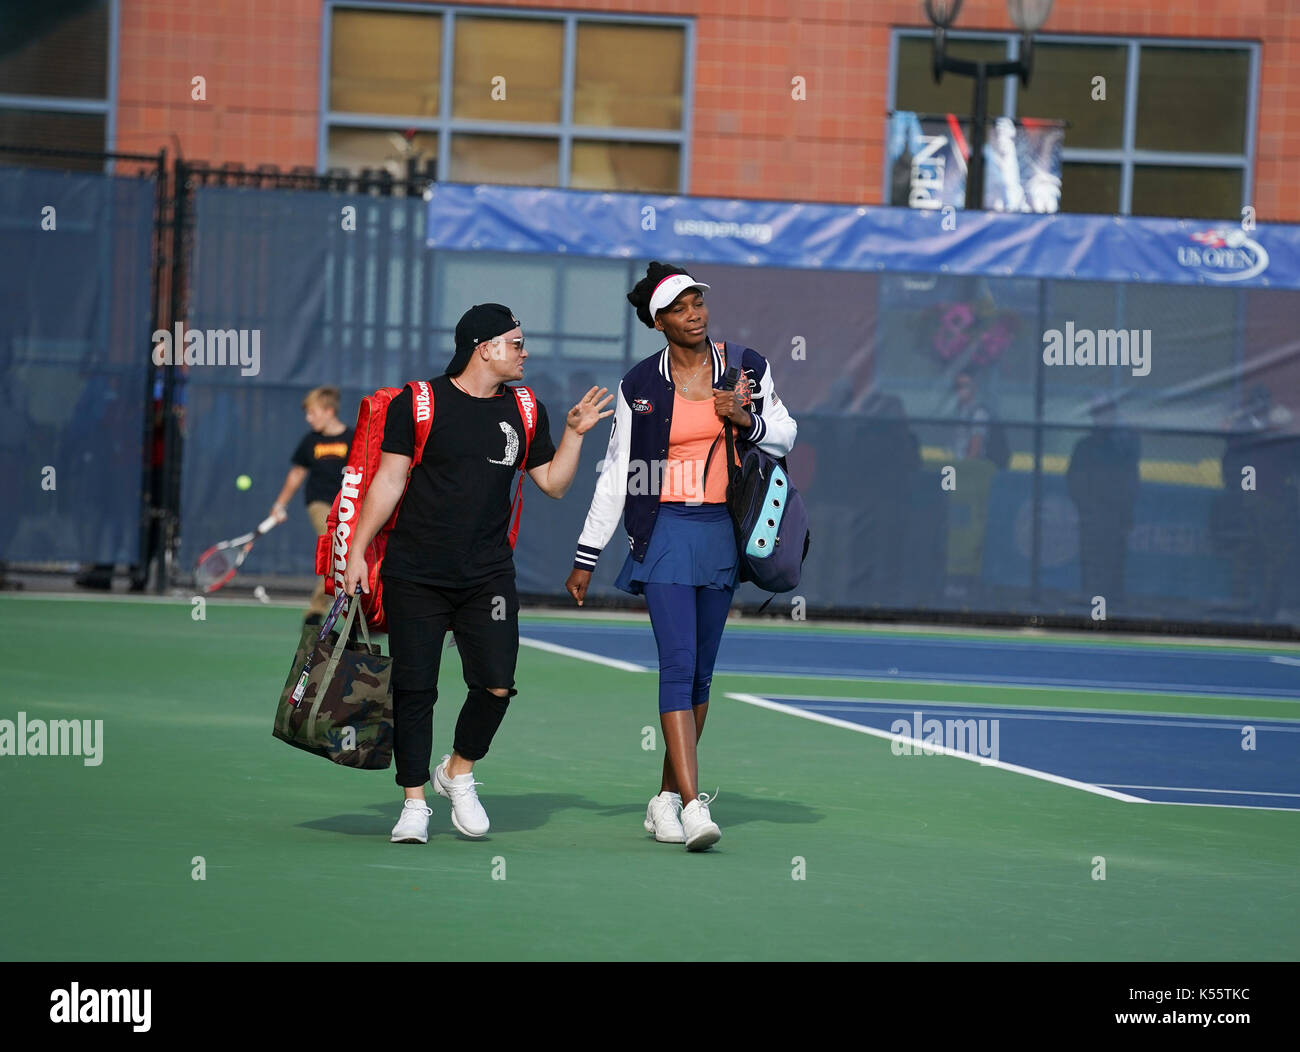 New York, United States. 07th Sep, 2017. Venus Williams of USA practices at US Open Championships at Billie Jean King National Tennis Center Credit: Lev Radin/Pacific Press/Alamy Live News - Stock Image